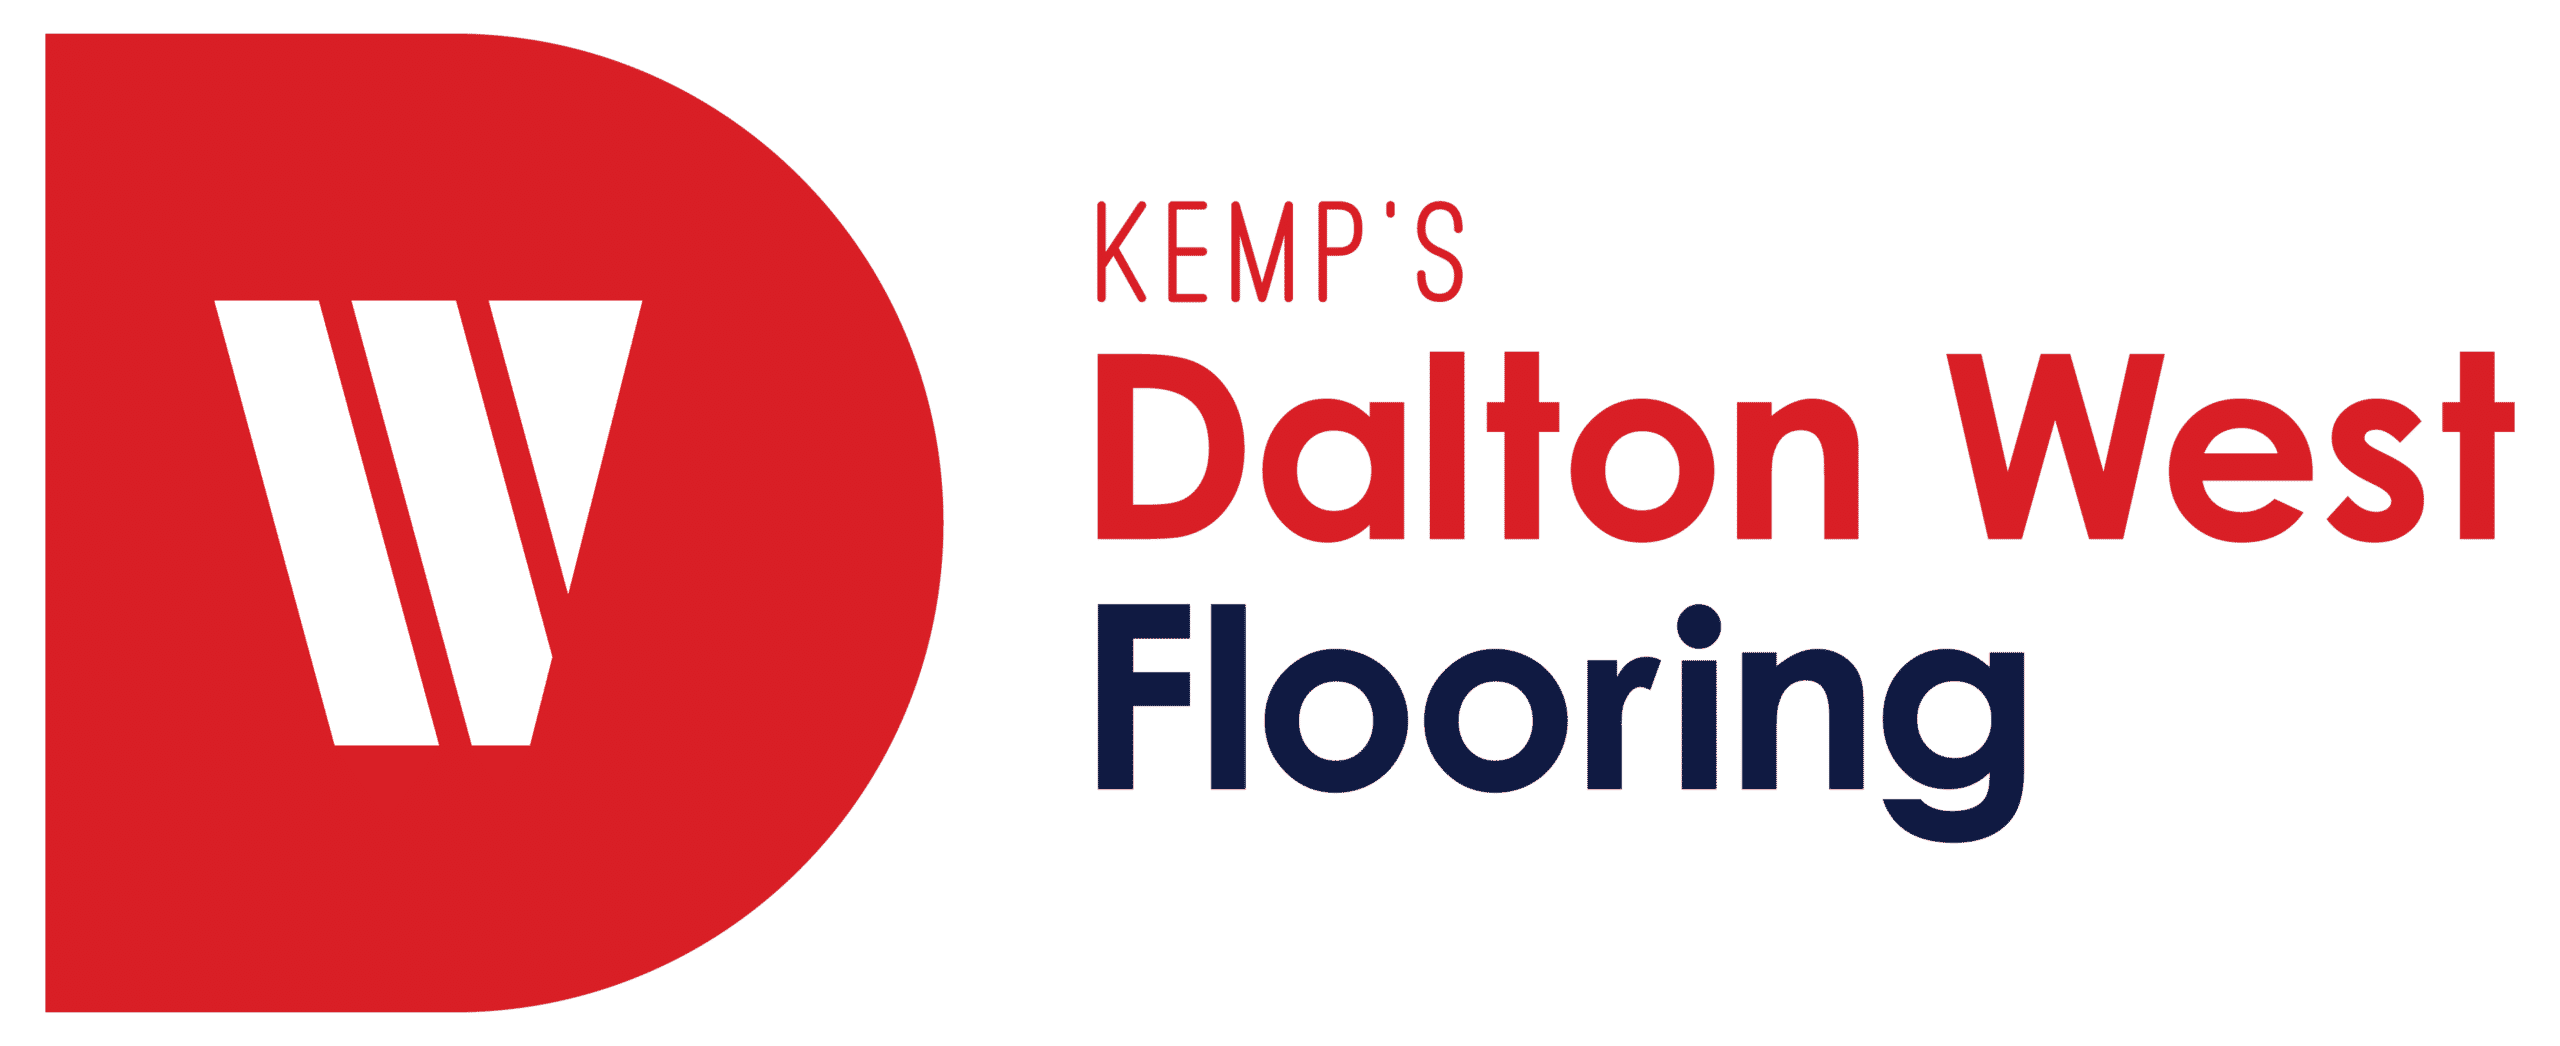 Kemp's Dalton West Flooring